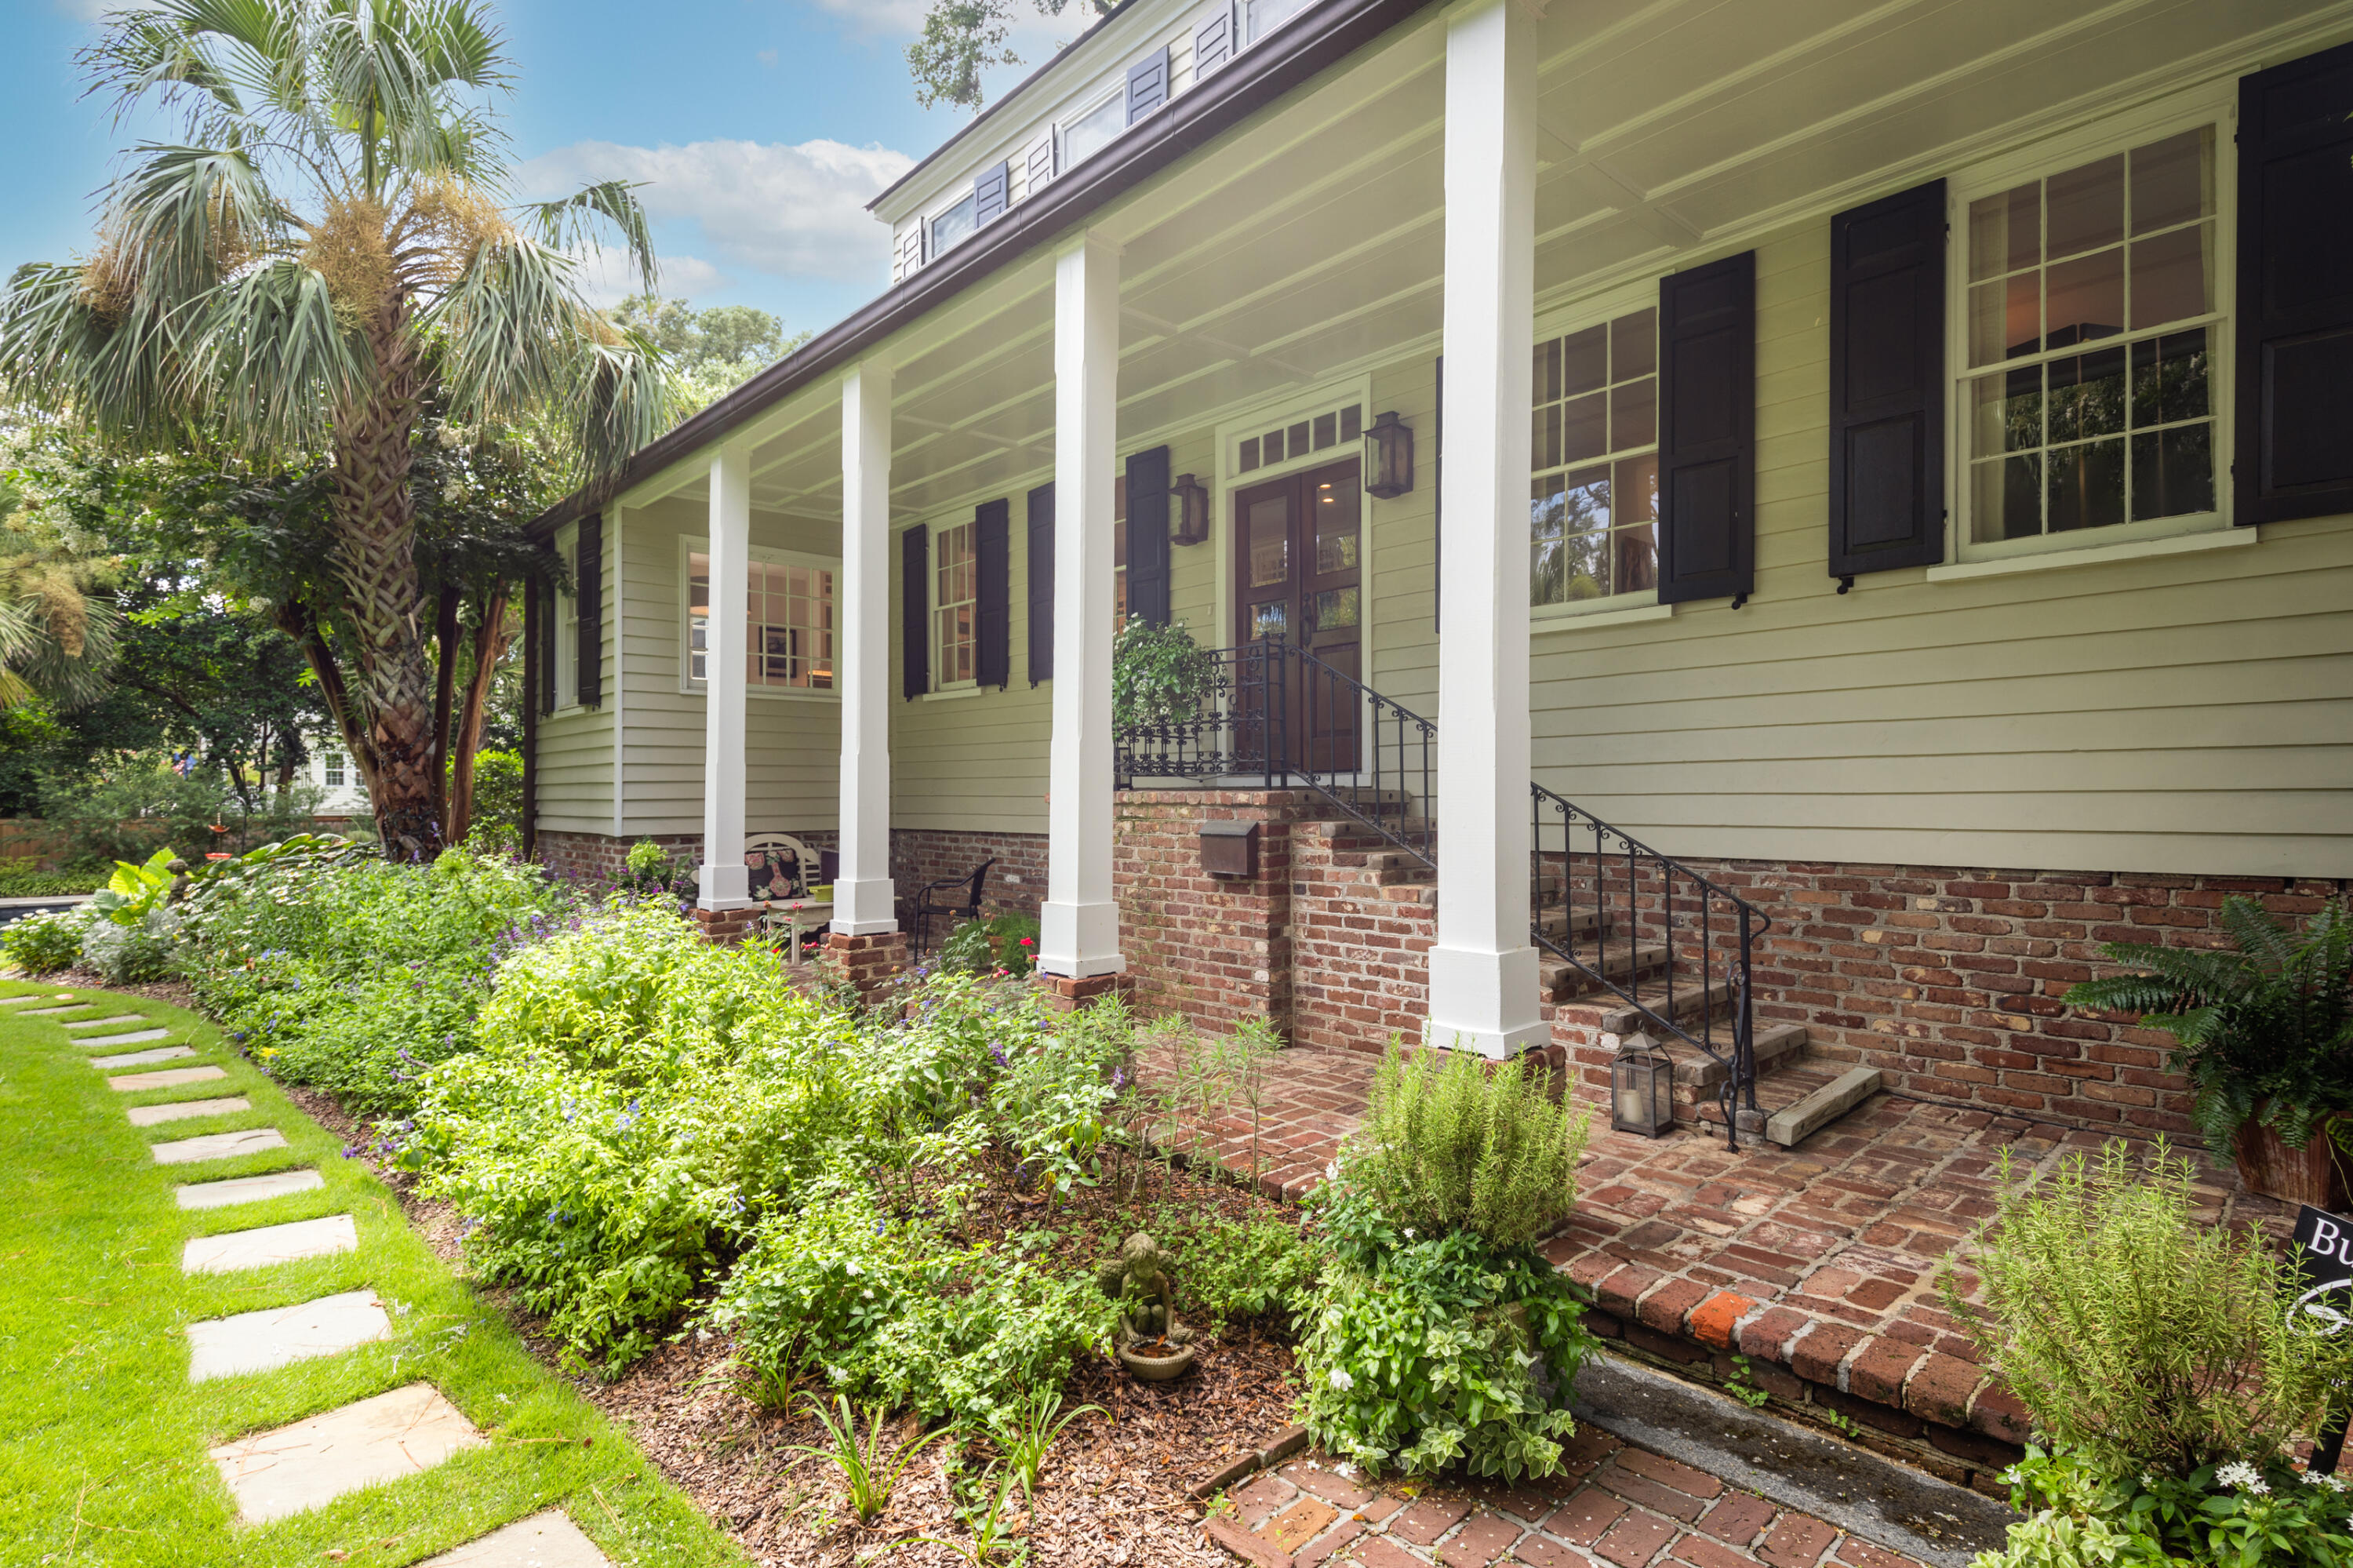 Old Village Homes For Sale - 429 Whilden, Mount Pleasant, SC - 90